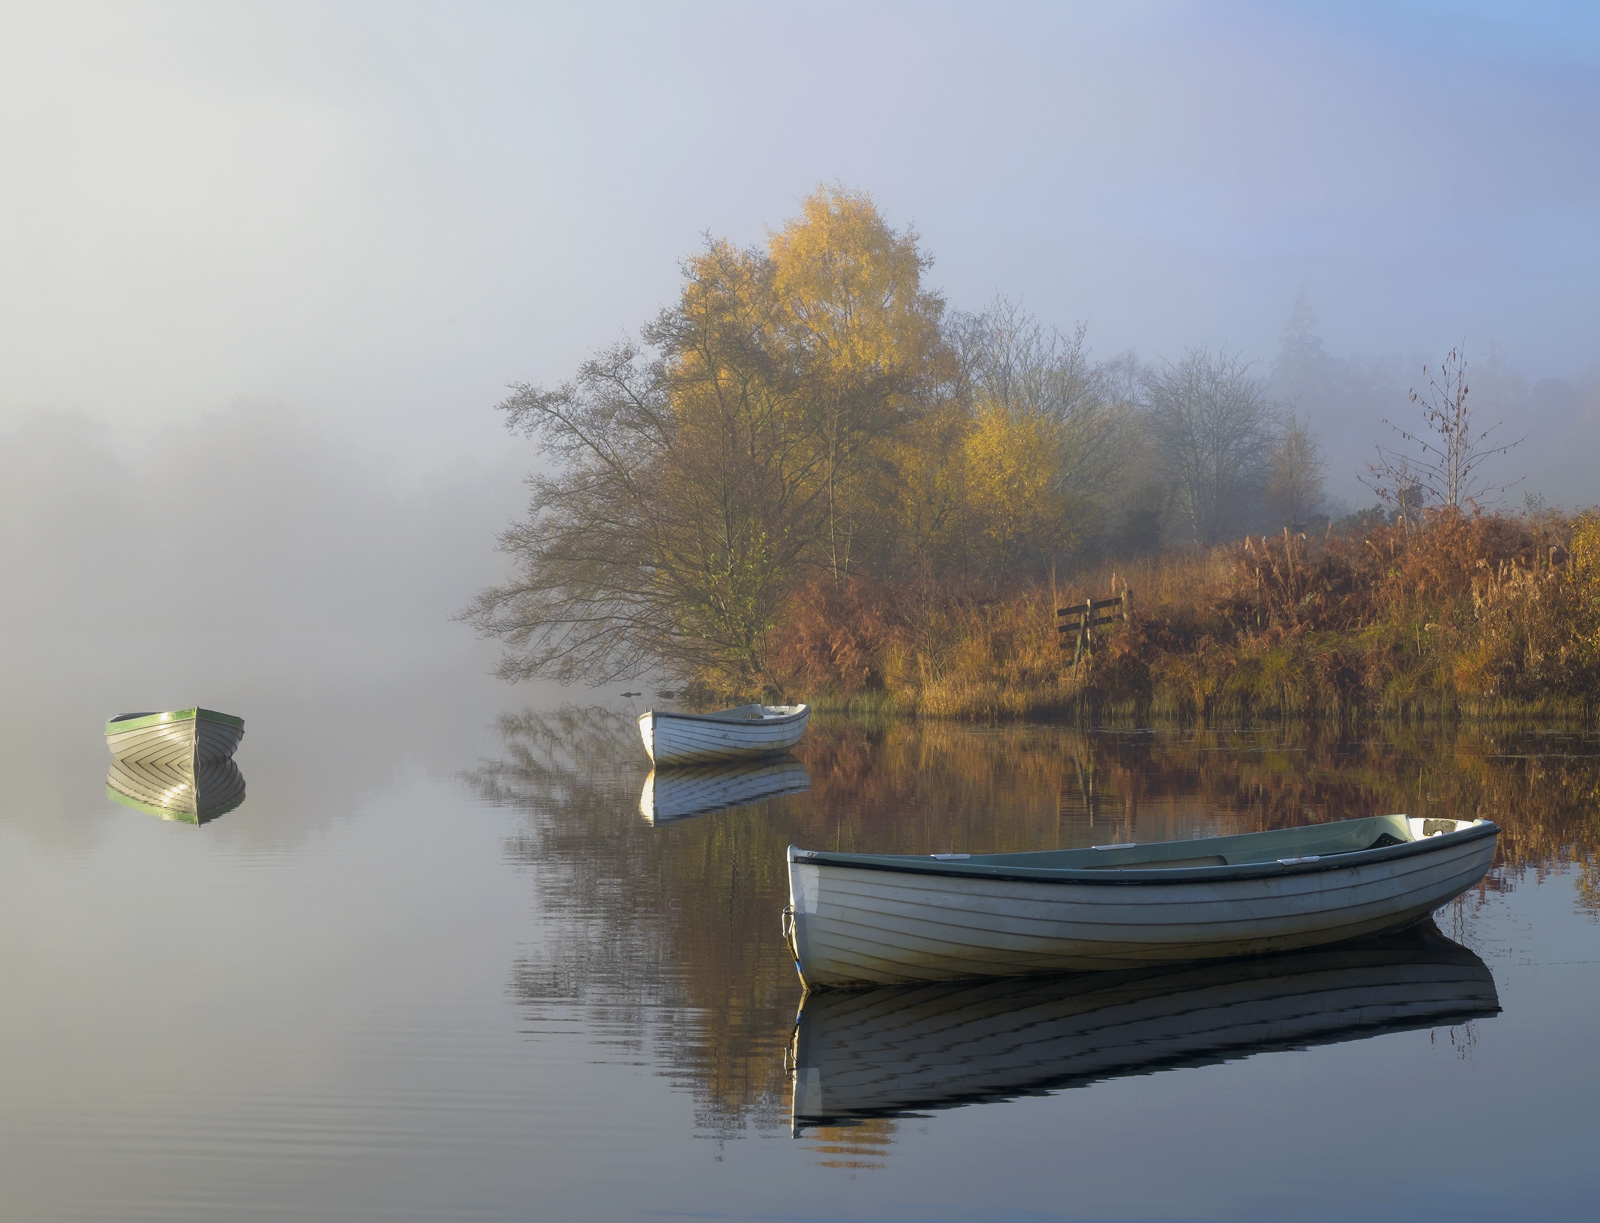 This charming little loch is often a stunning surprise waiting to happen particular during autumn where it gathers and traps...